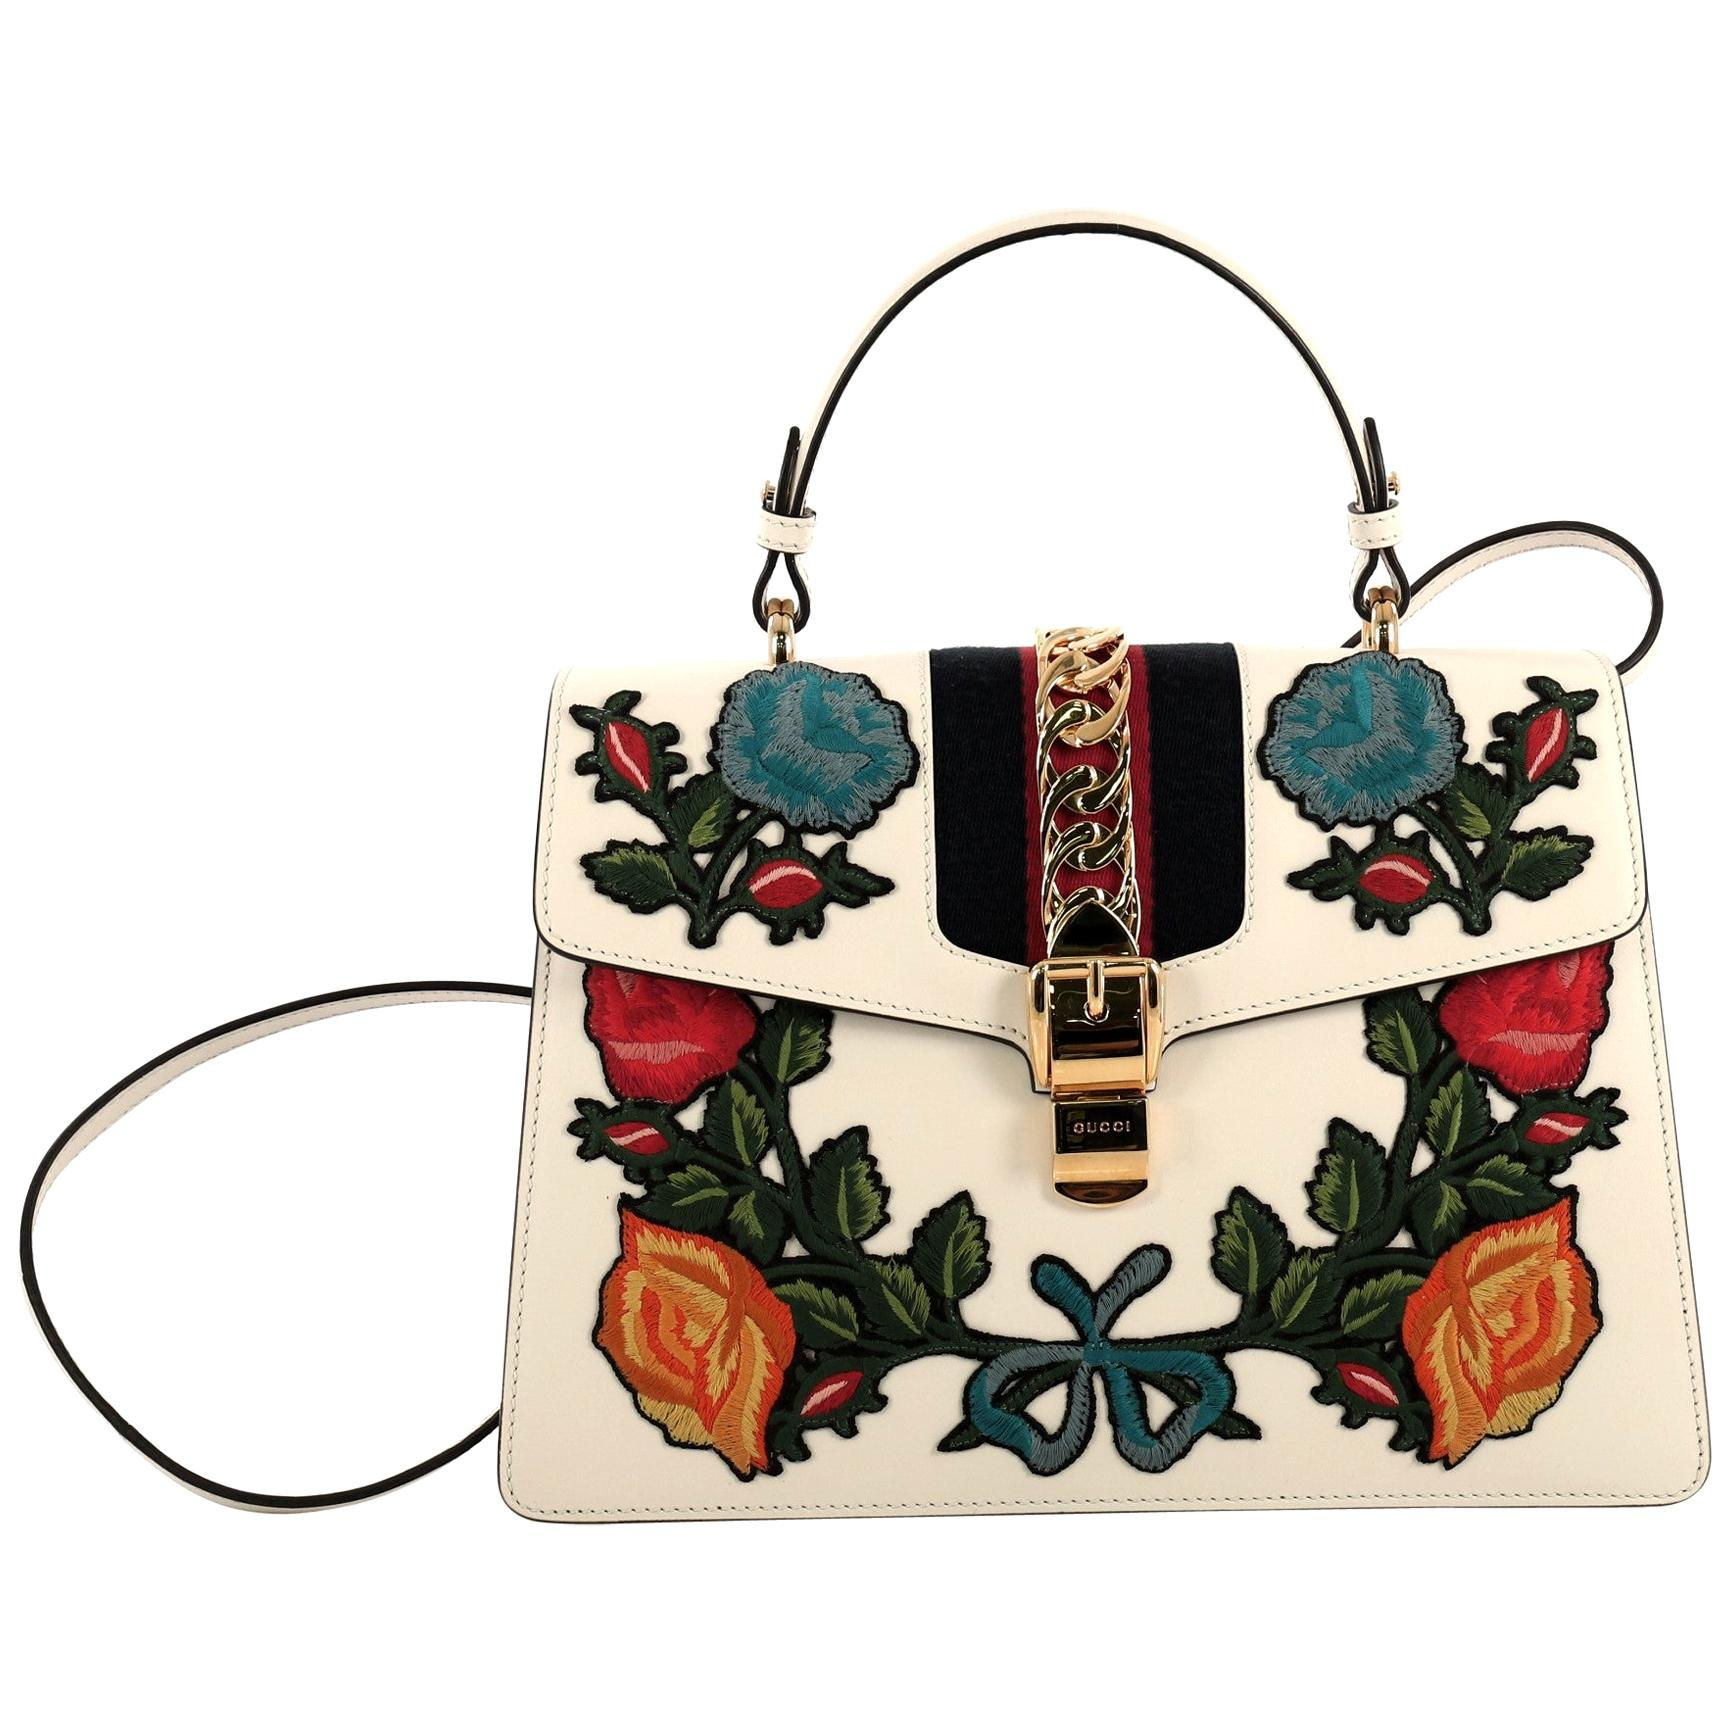 f1e5ad47a Vintage Gucci: Clothing, Bags & More - 4,117 For Sale at 1stdibs